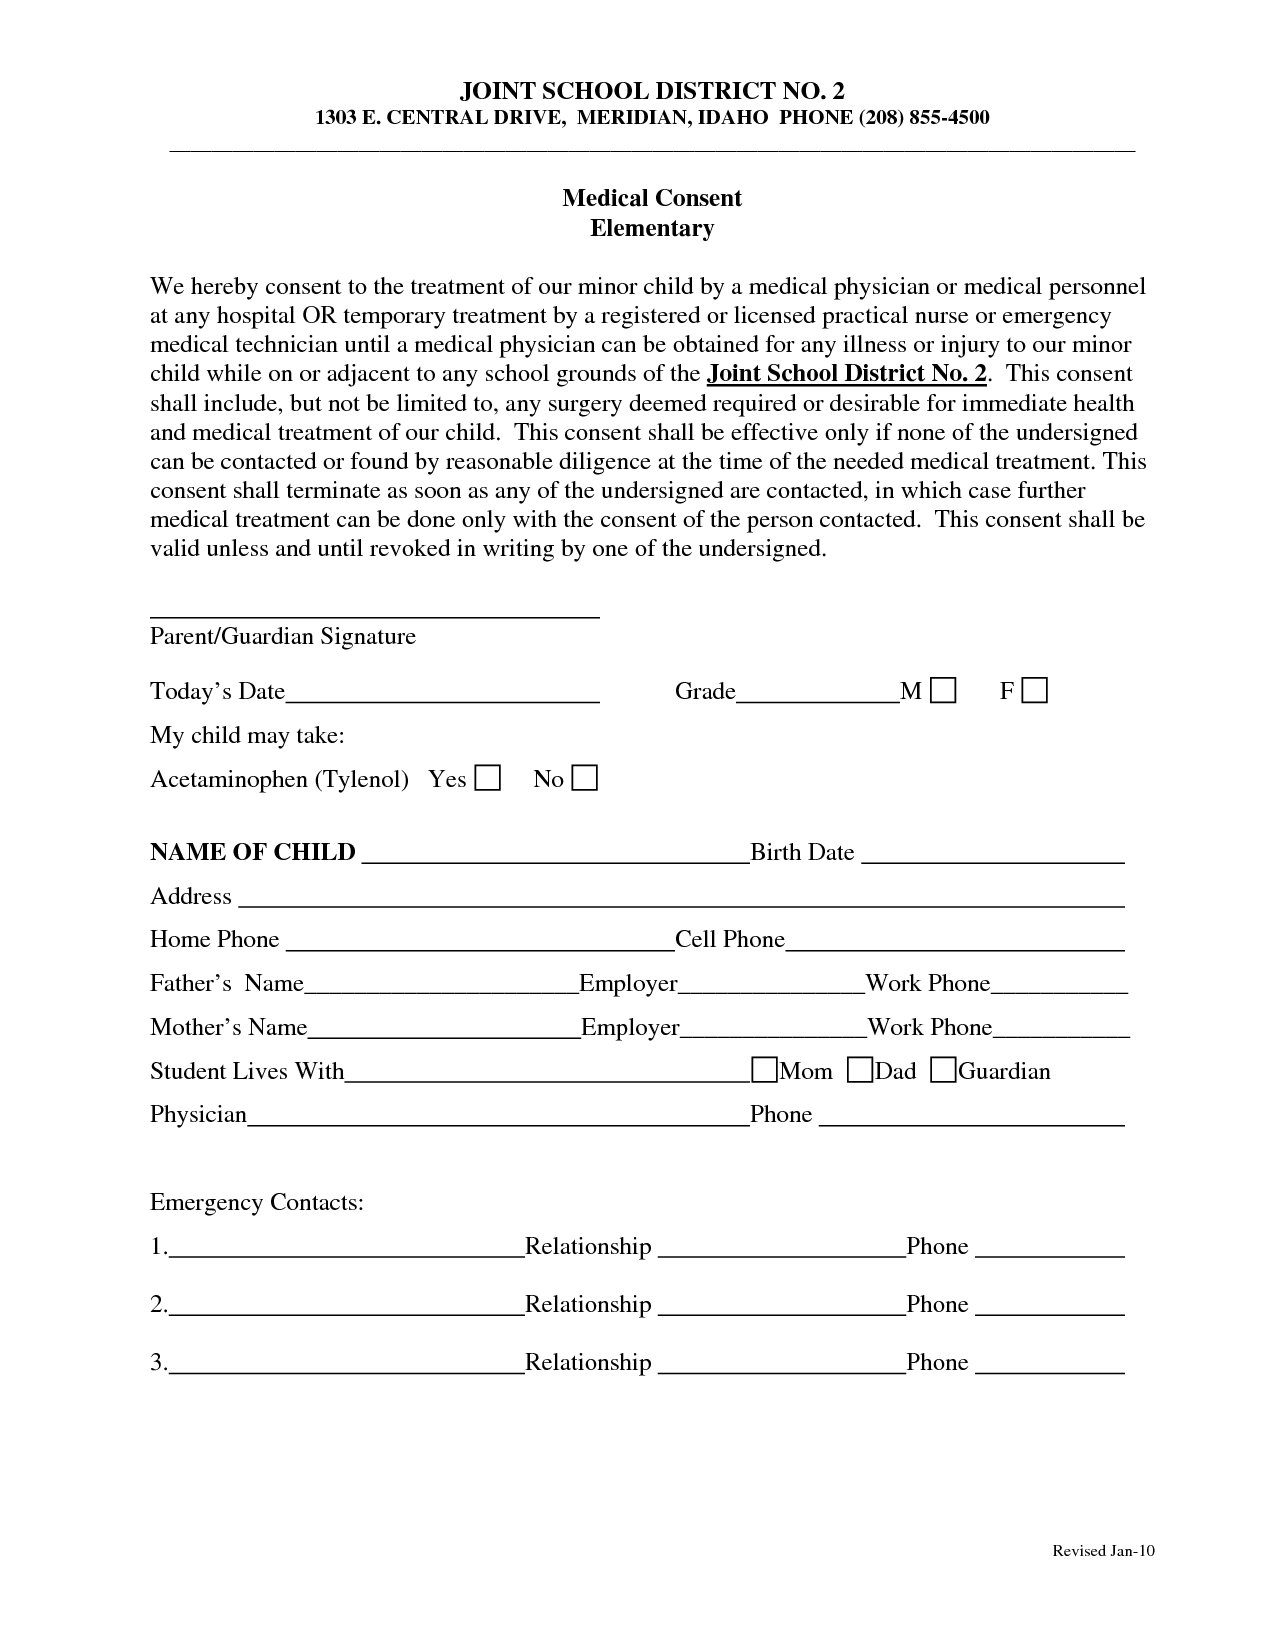 Medical Consent Form Template. school trip consent form | buy